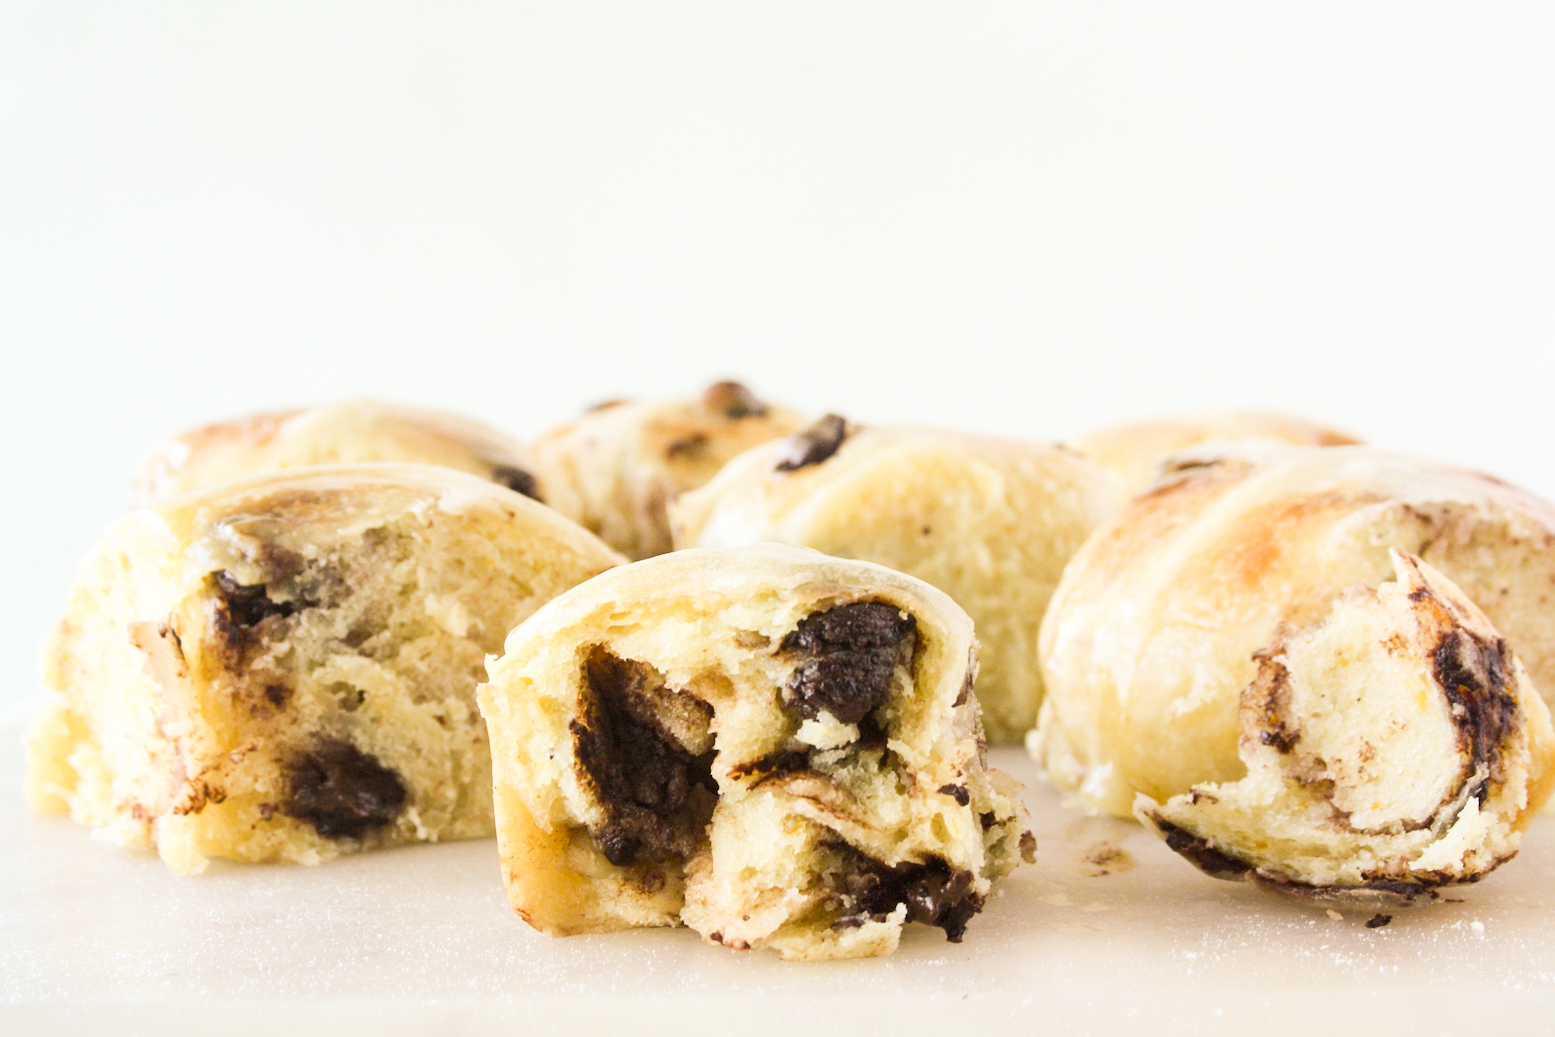 Soft and buttery hot cross buns with orange zest and chocolate chips